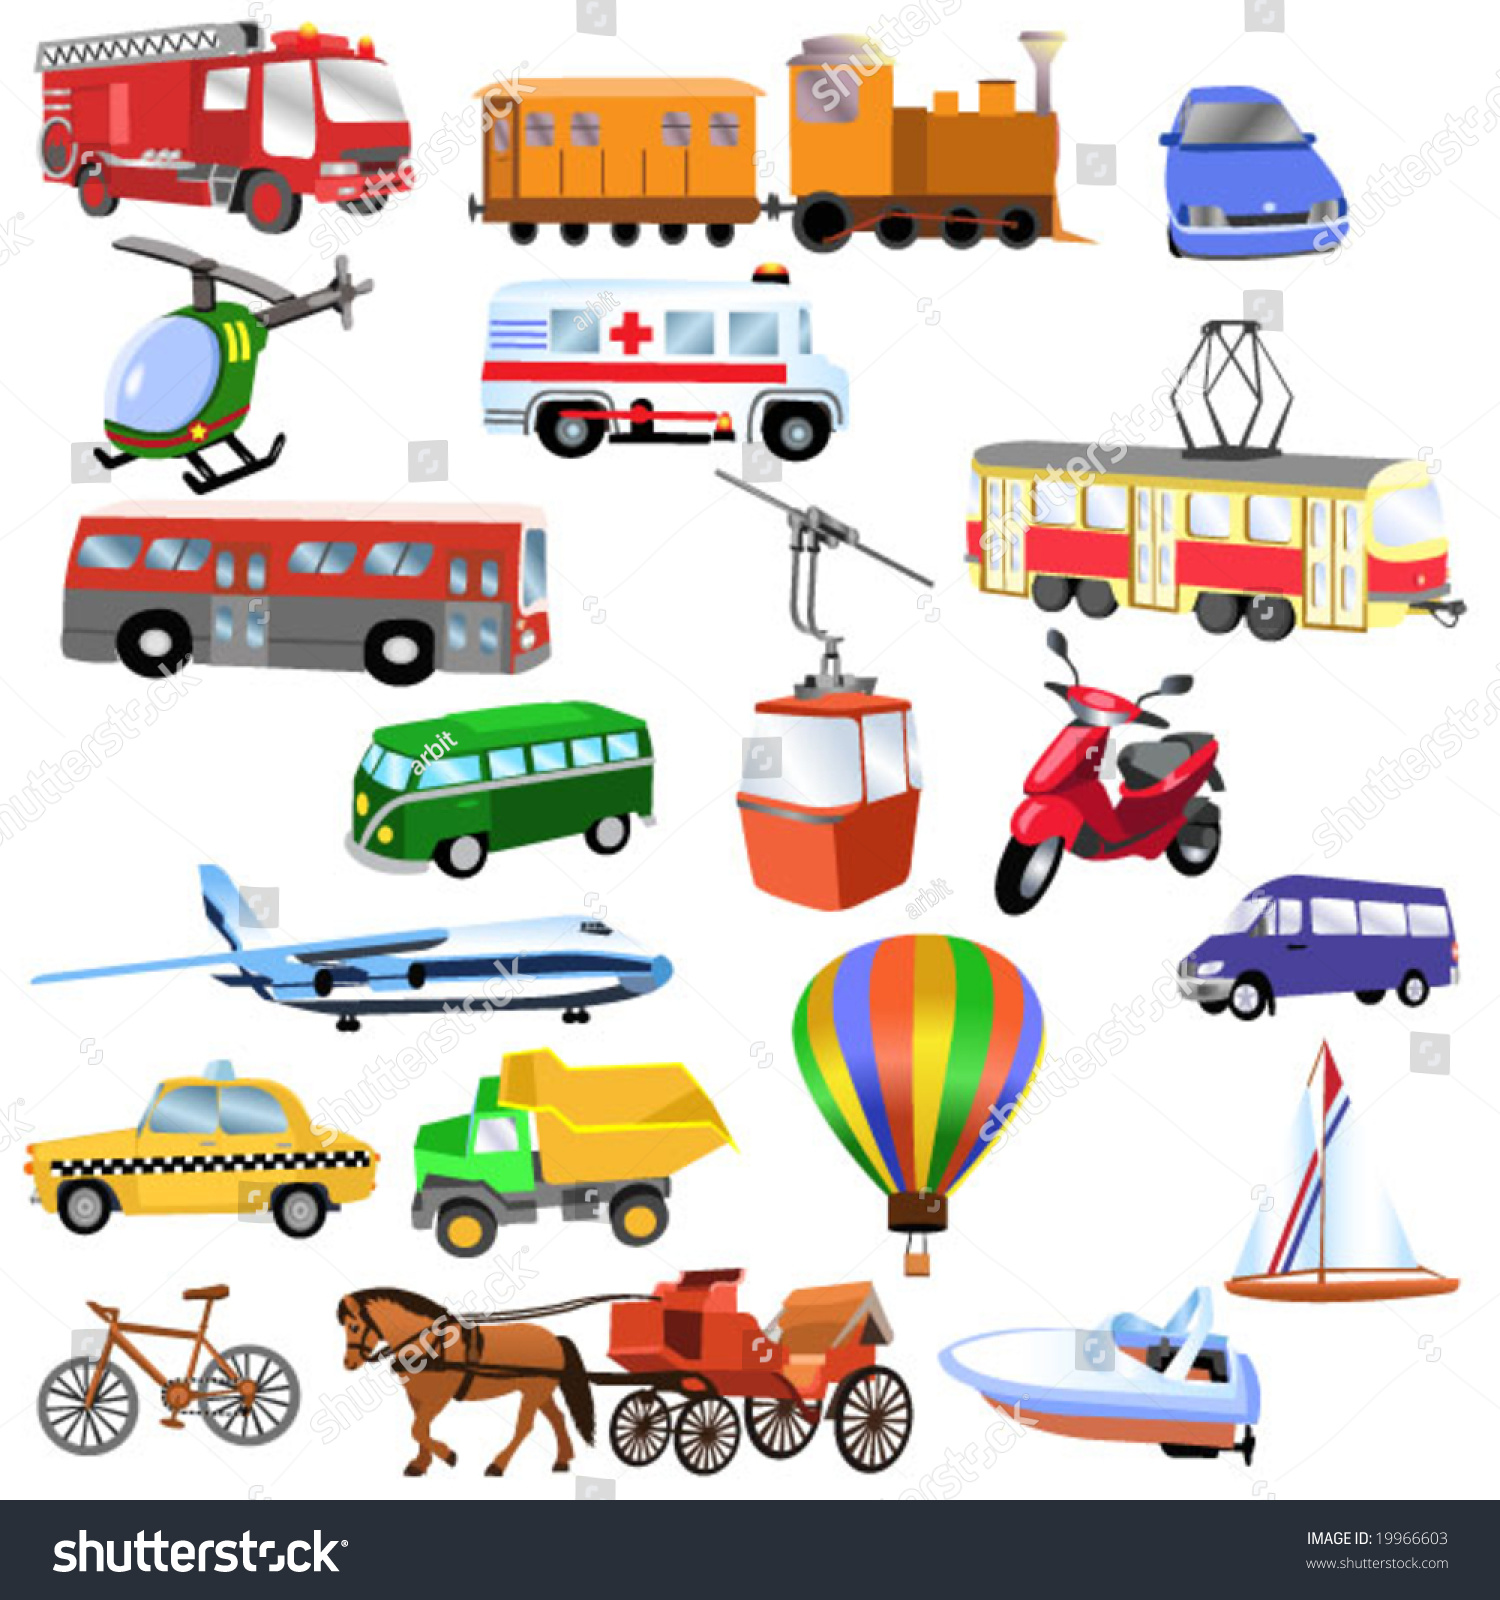 cars helicopter toy with Stock Vector Transportation on 371502657788 additionally 291604936645 furthermore Cool Body Design New Rc Helicopter 4ch 2 4g Rc Toys Single Blade Remote Control Helicopter Kids Toy Gifts For Sale furthermore Emek 81135 Volvo Fh Box Trailer Truck White moreover Toy Helicopter Wire Control Toy Toy Remote Control Toys Electric Toy Children Toys Boys Girl Toy.